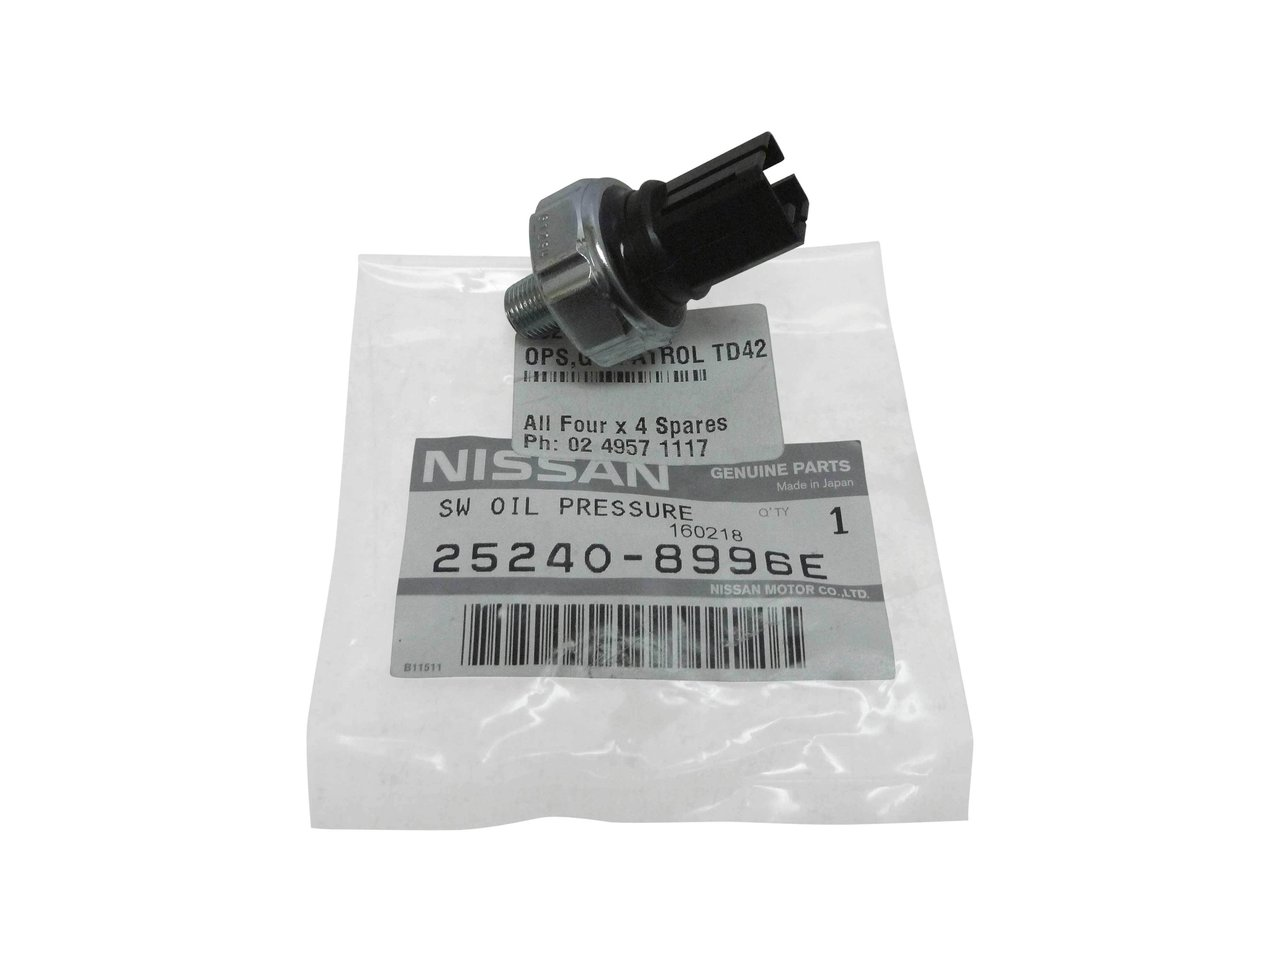 Nissan Patrol Engine Oil Oem Genuine Oil Filter Housing To